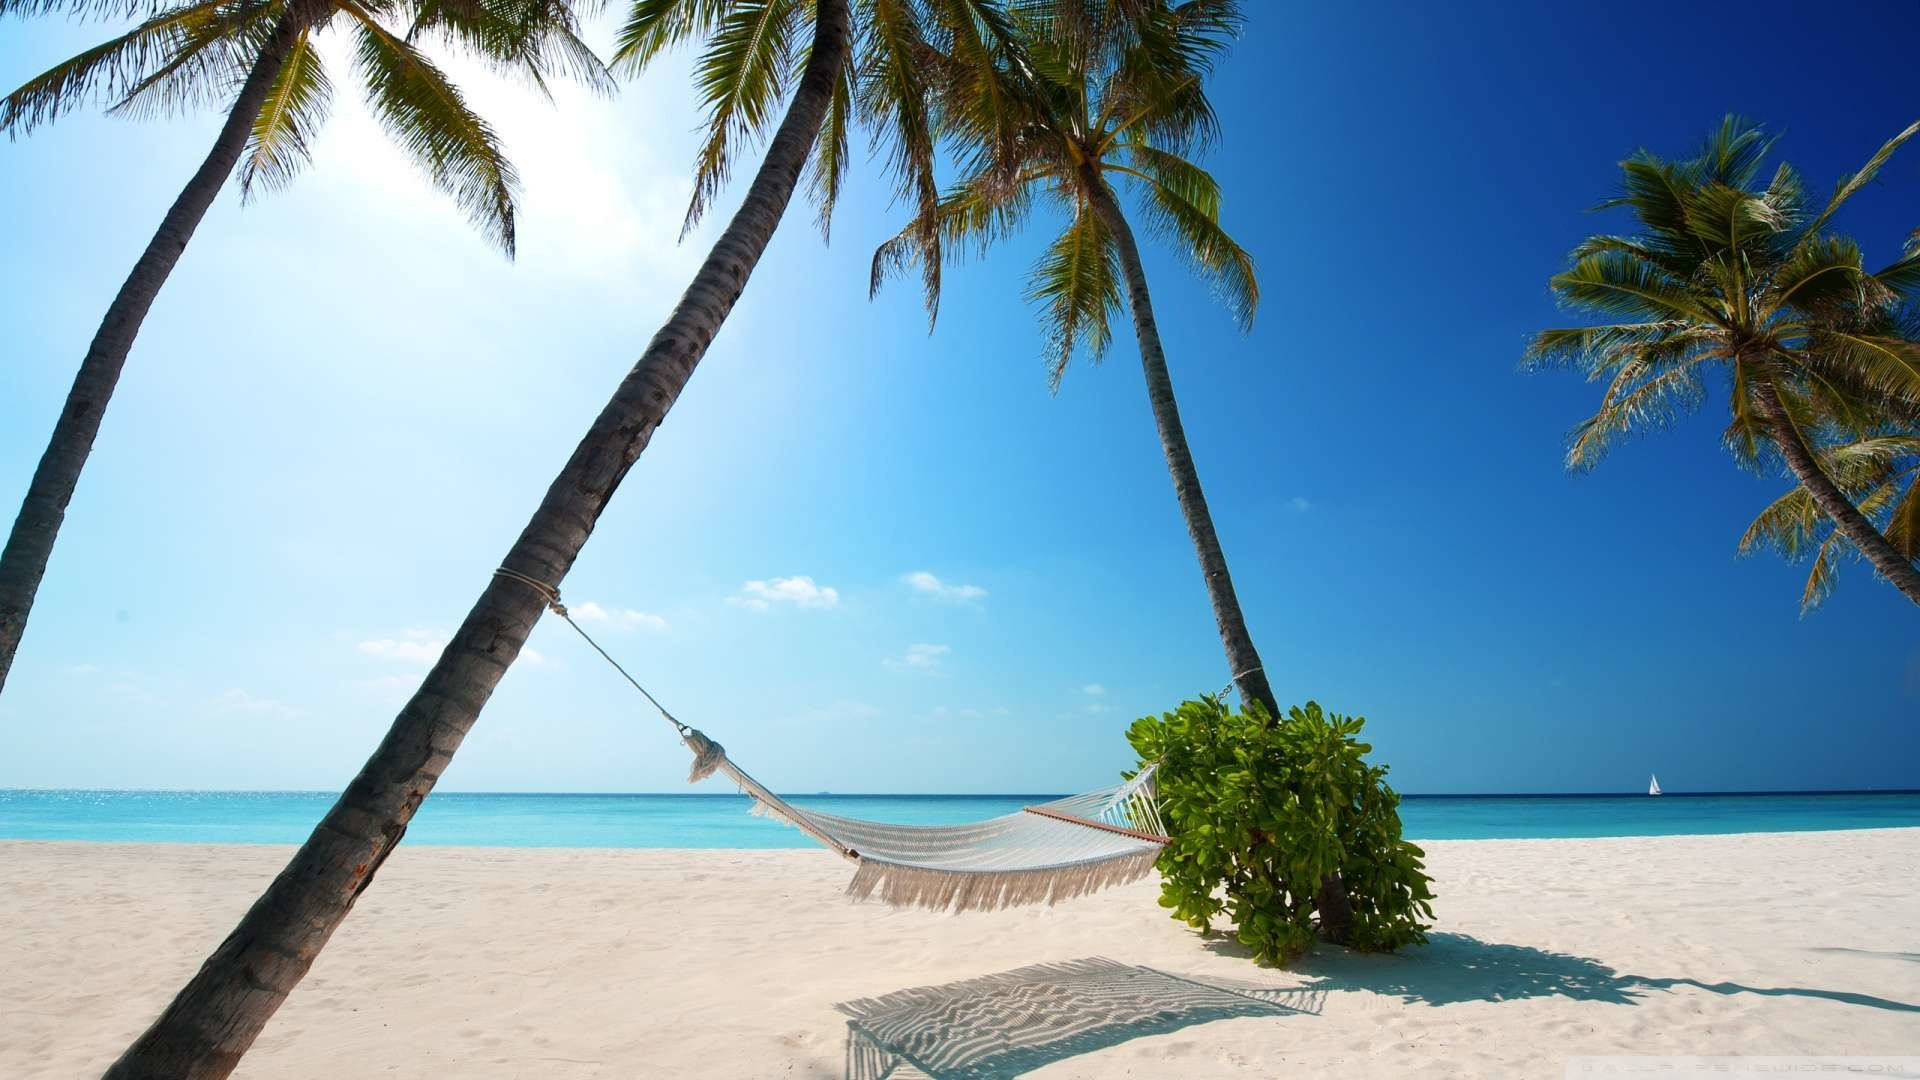 1920x1080 Wallpaper: Hammock On Tropical Beach Wallpaper 1080p HD. Upload at .